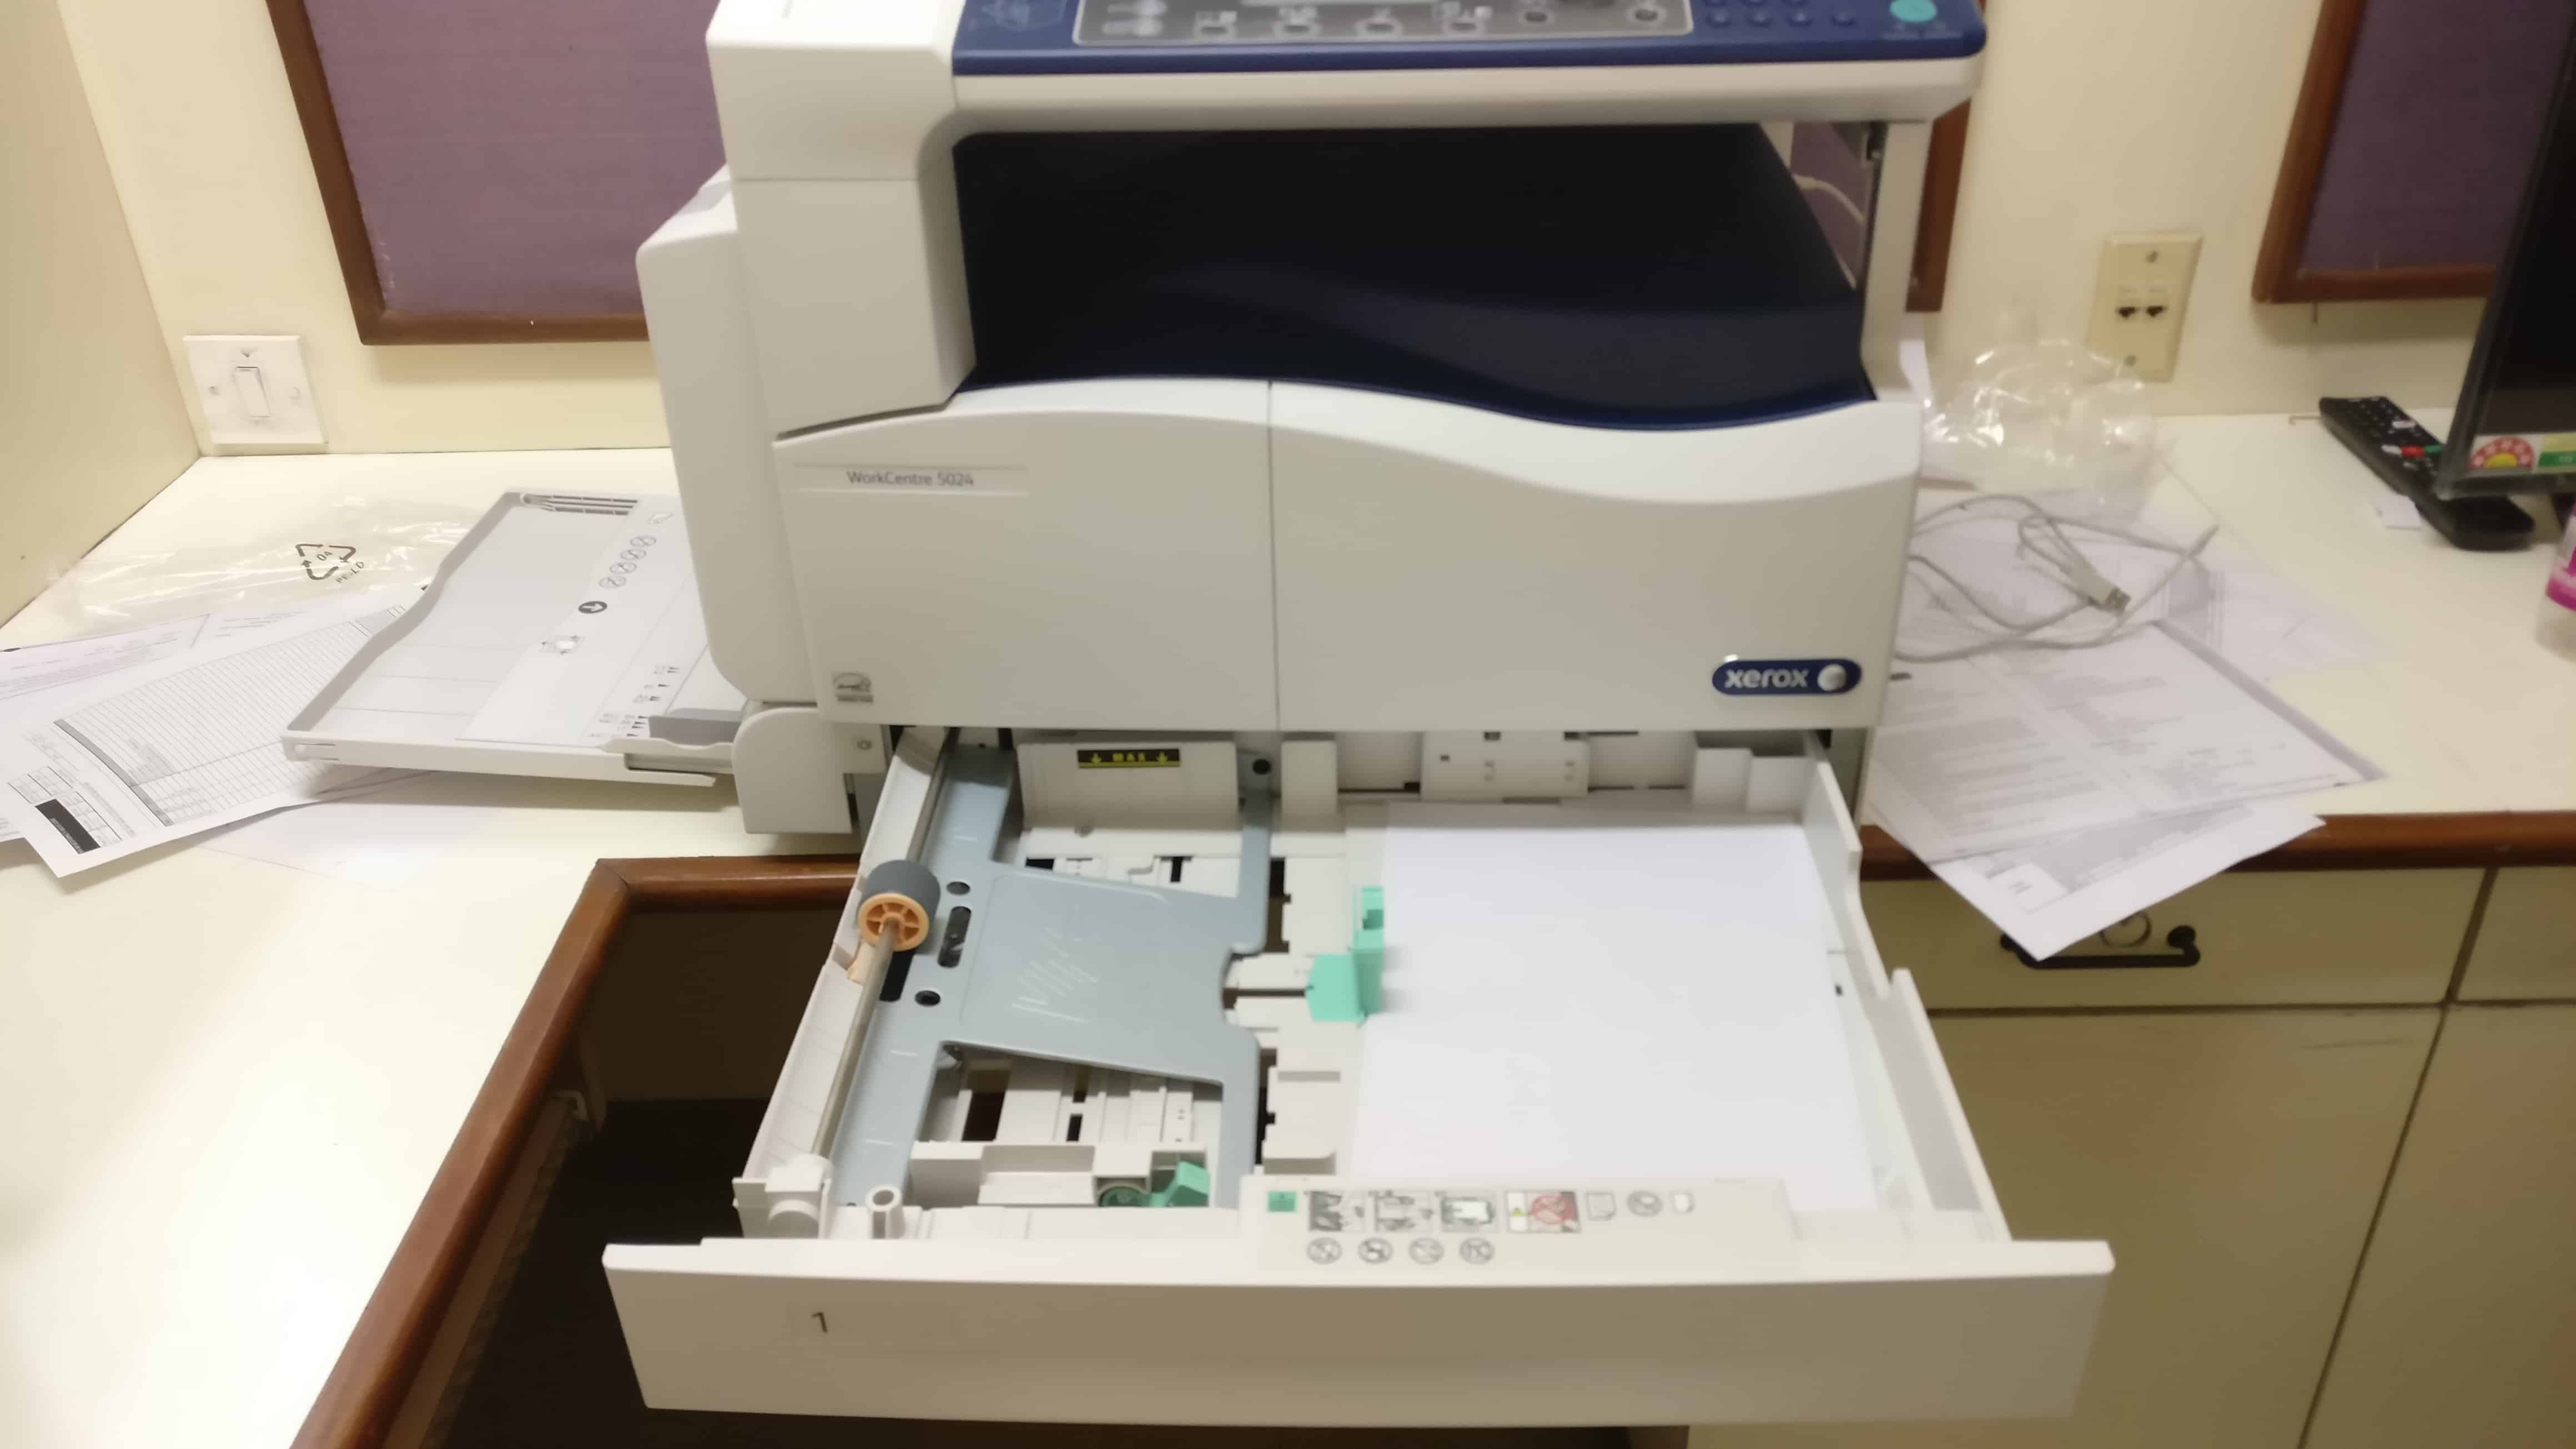 Xerox WorkCentre 5024 Review: A perfect MFP from small